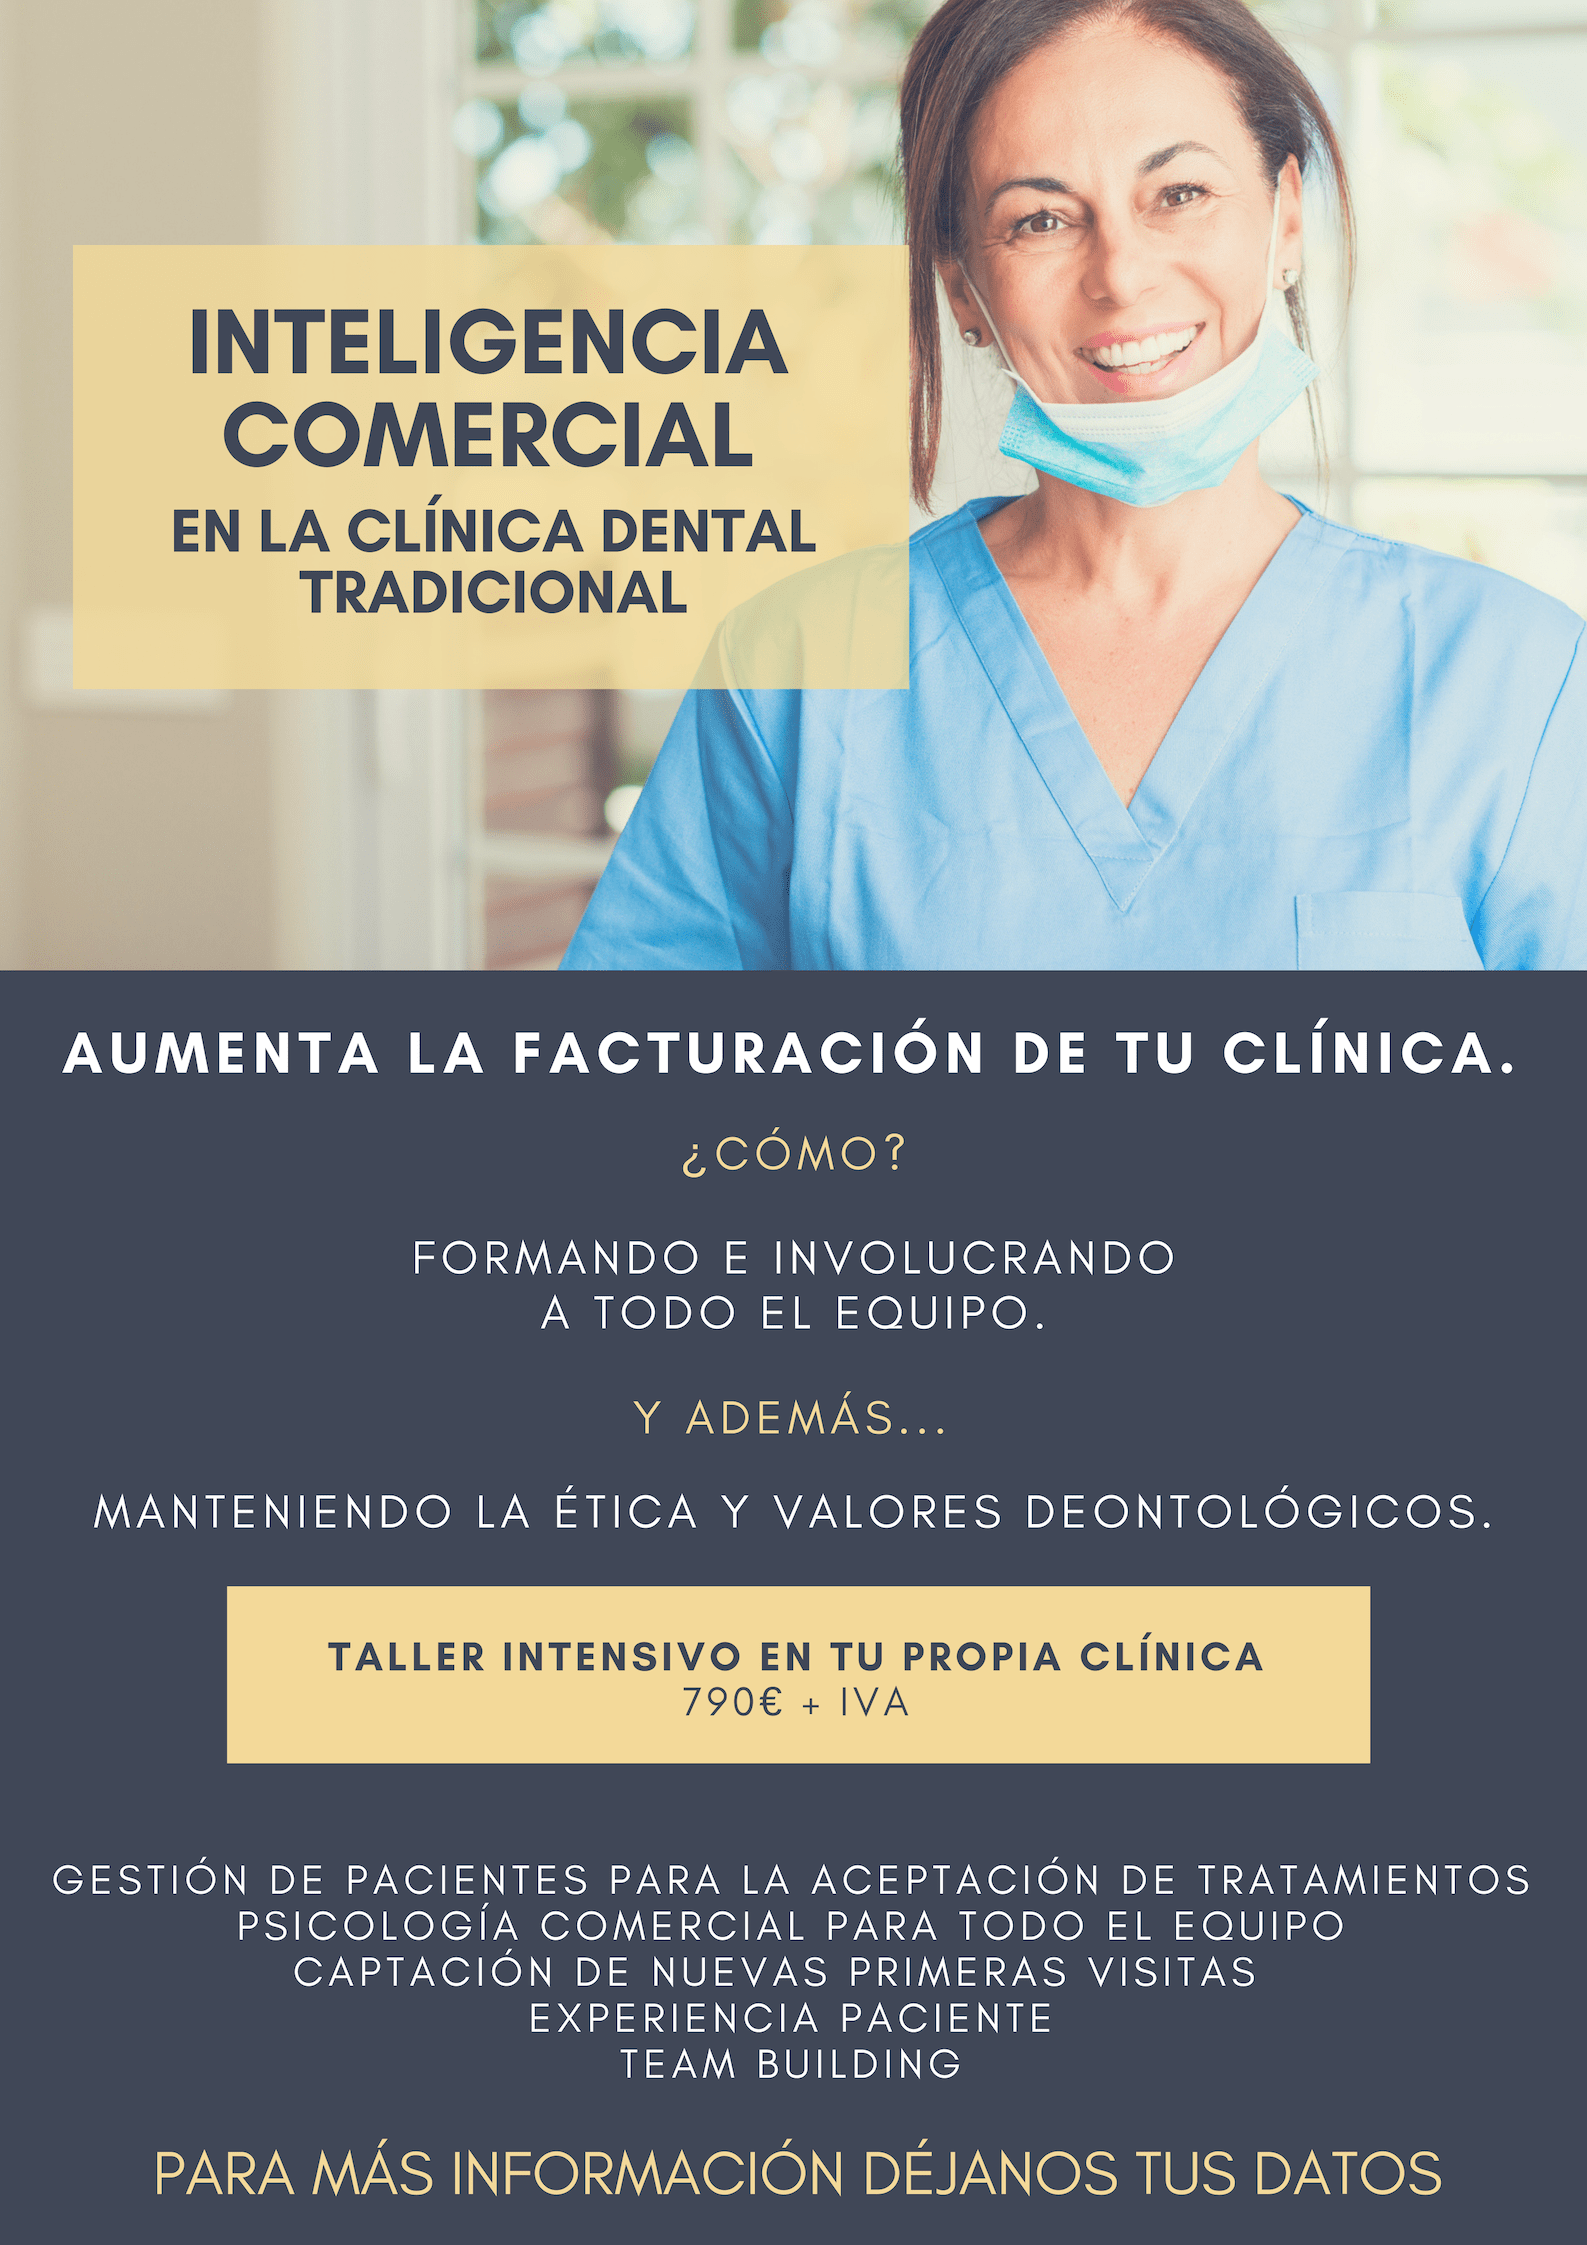 Curso inteligencia comercial clinica dental